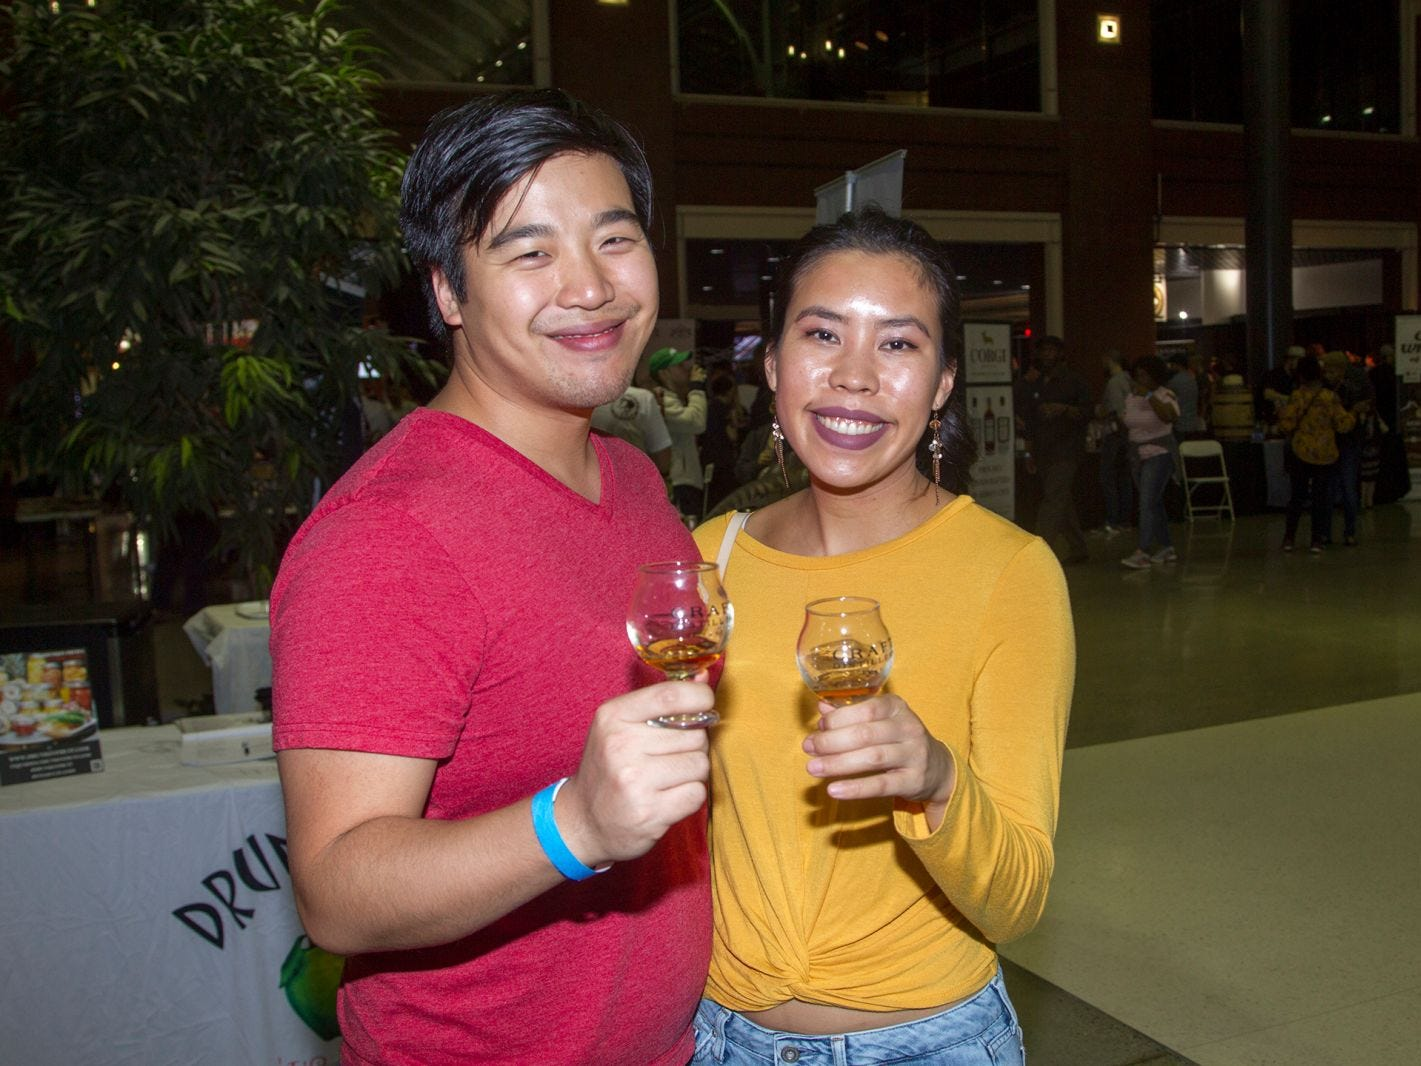 Steve and Linn. Jersey City Craft Distillery Fest at the Harborside Atrium featured more than 100 styles of spirits. Guests had the chance to taste craft-distilled spirits from moonshine, rum, cognac, whiskey, vodka, gin, tequila and more. 09/08/2018